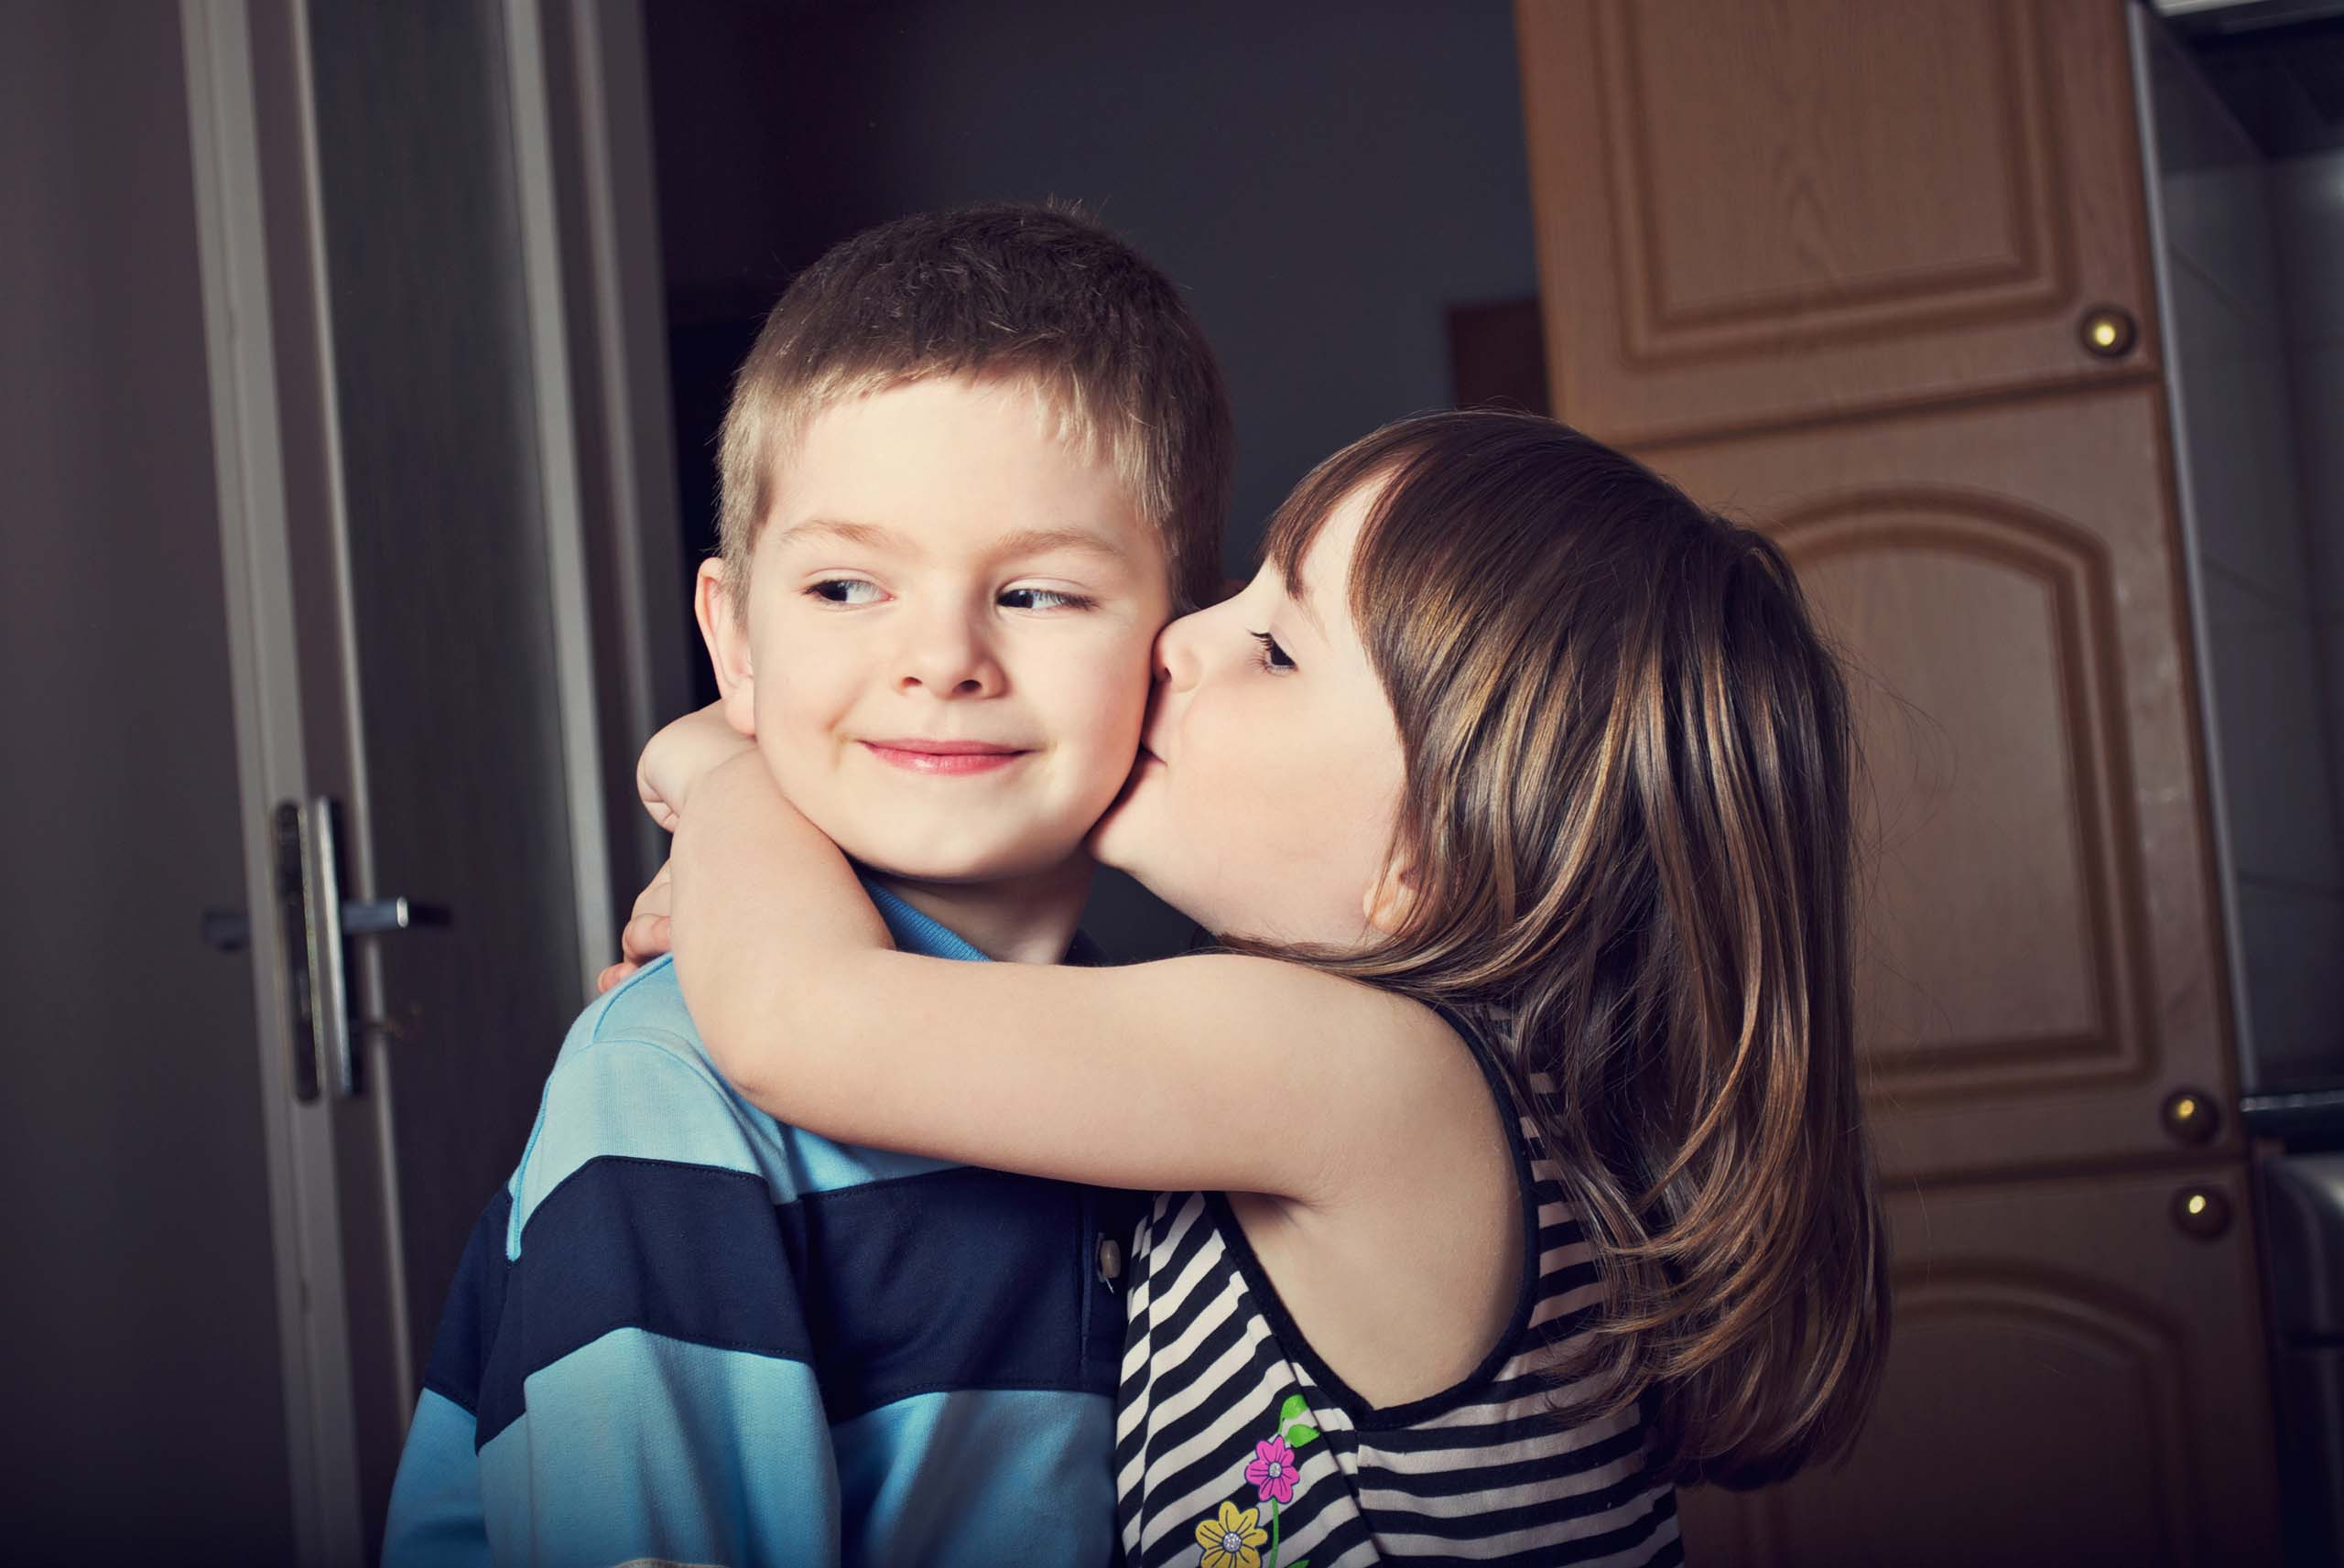 Sweet Girl And Boy Hd Wallpaper Boy Girl Kiss Wallpapers Group 55